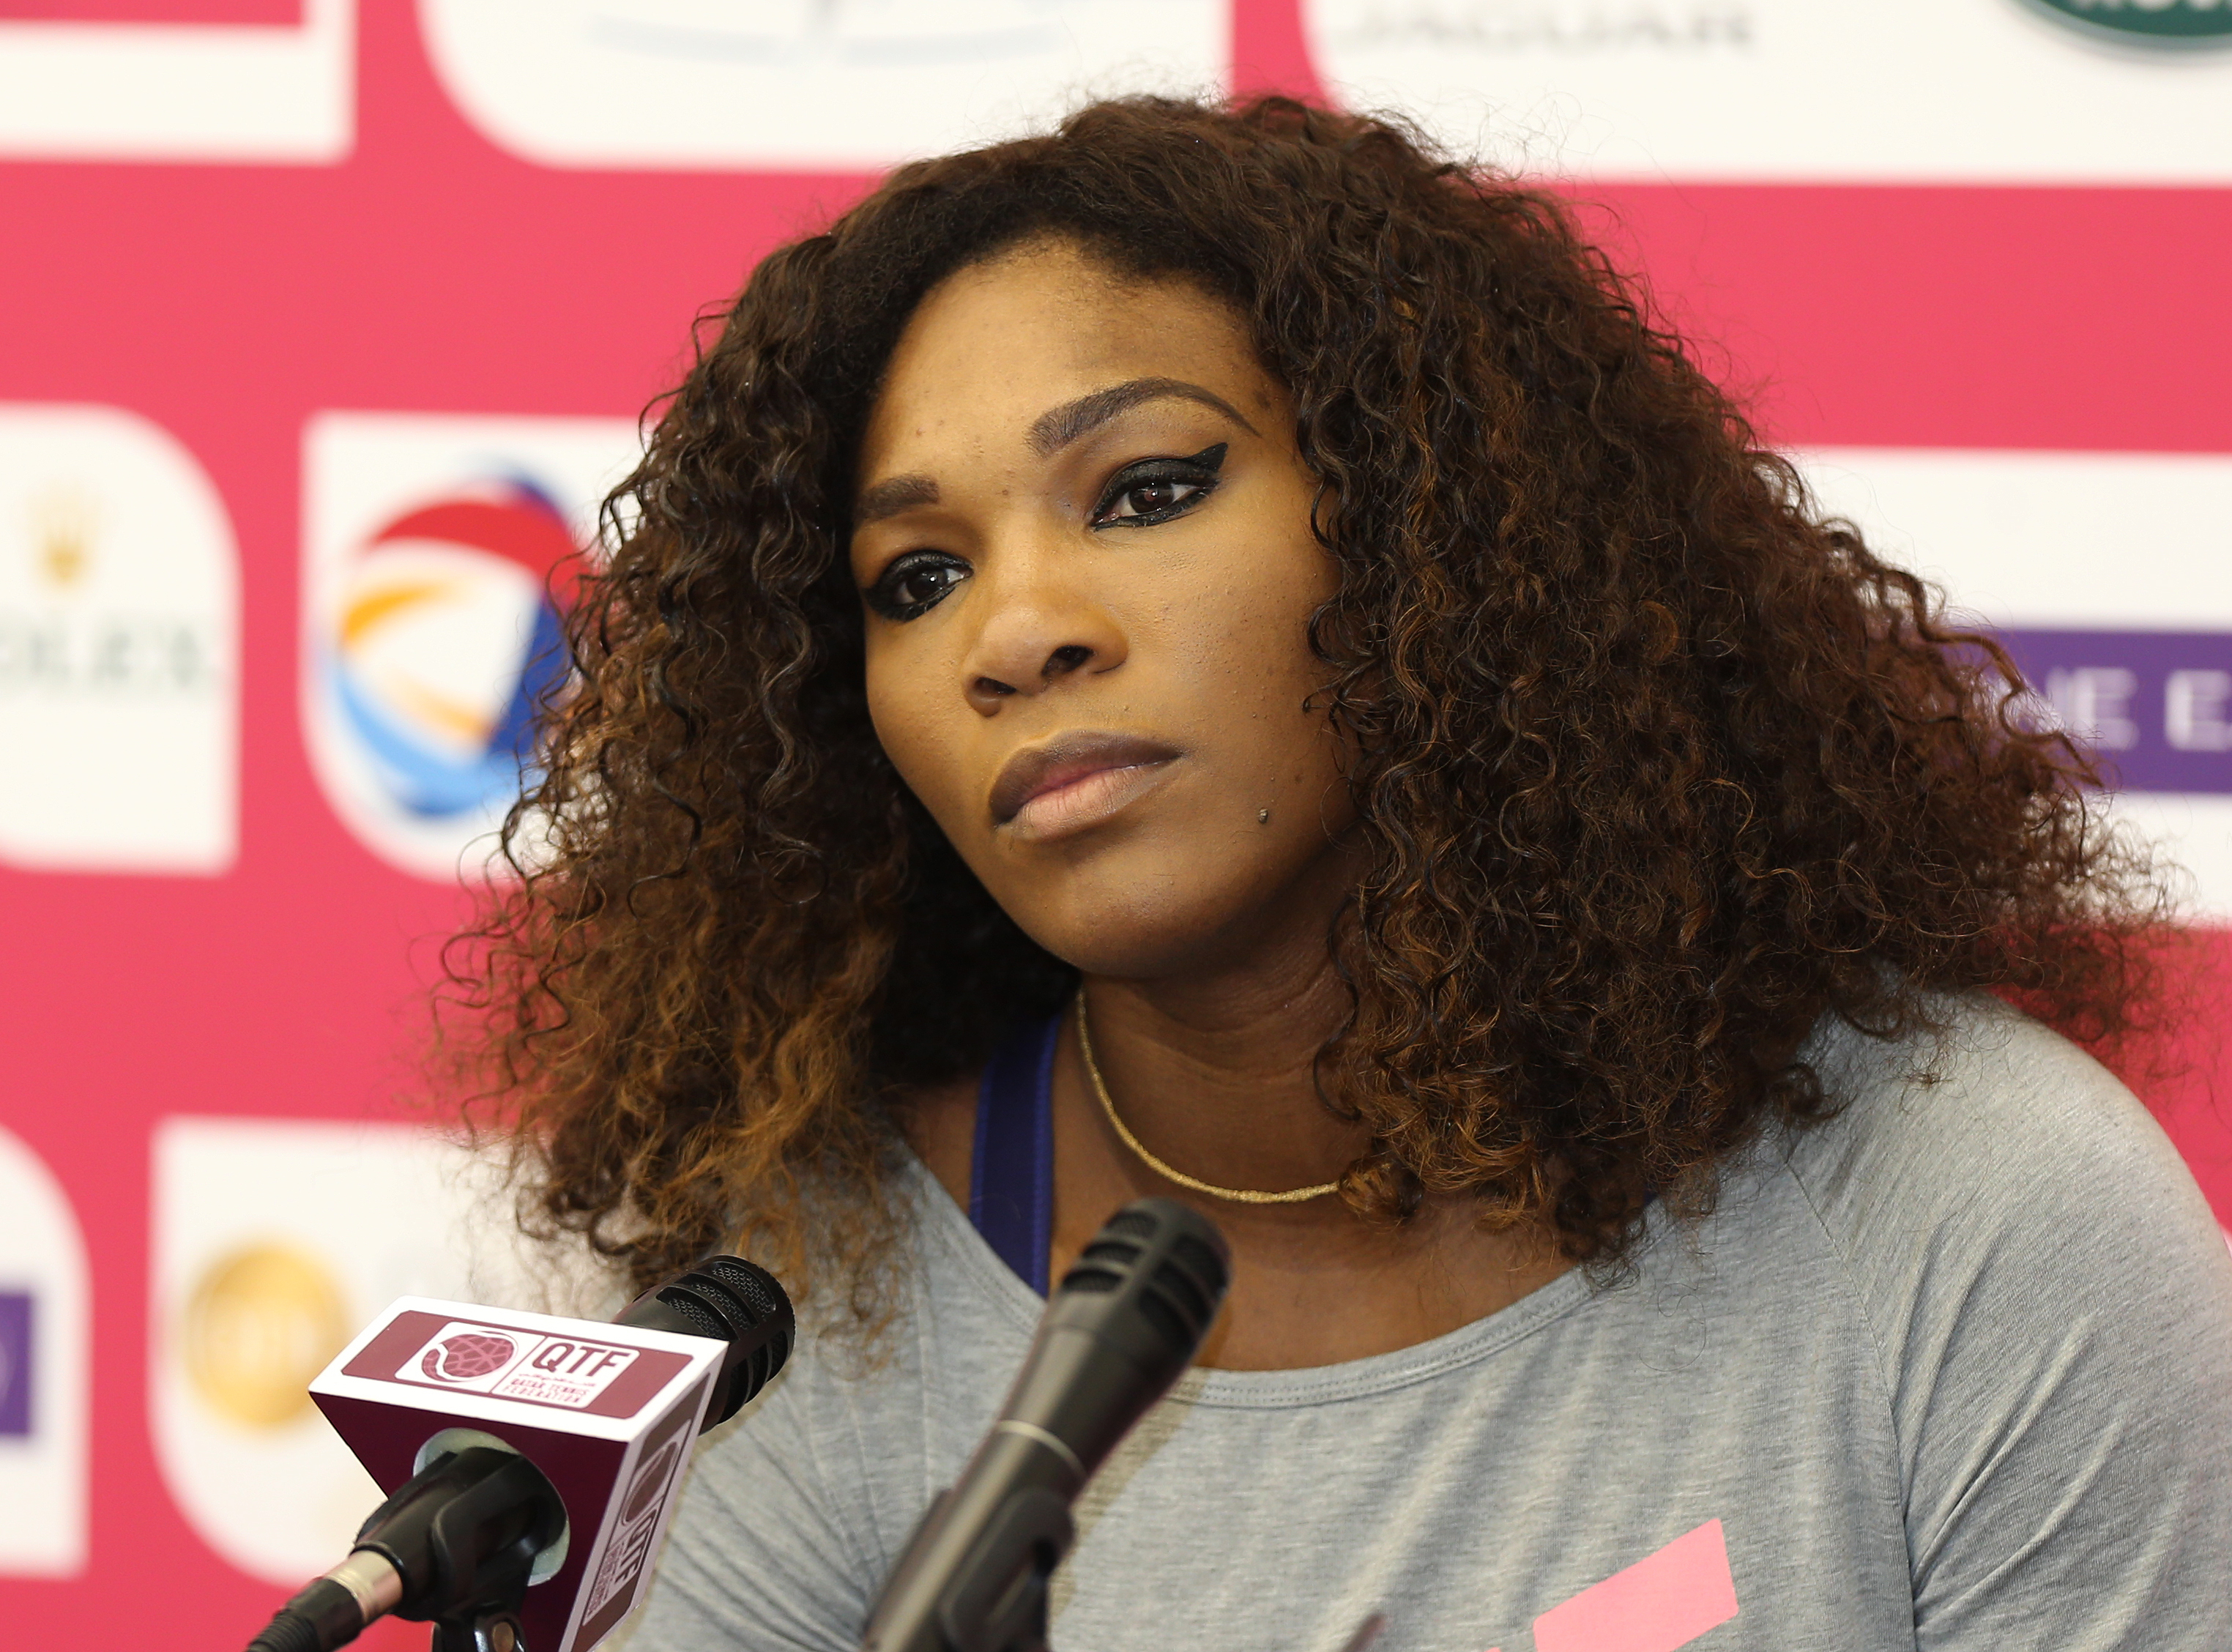 Williams: Serena Williams Got Real About Police Brutality And Black